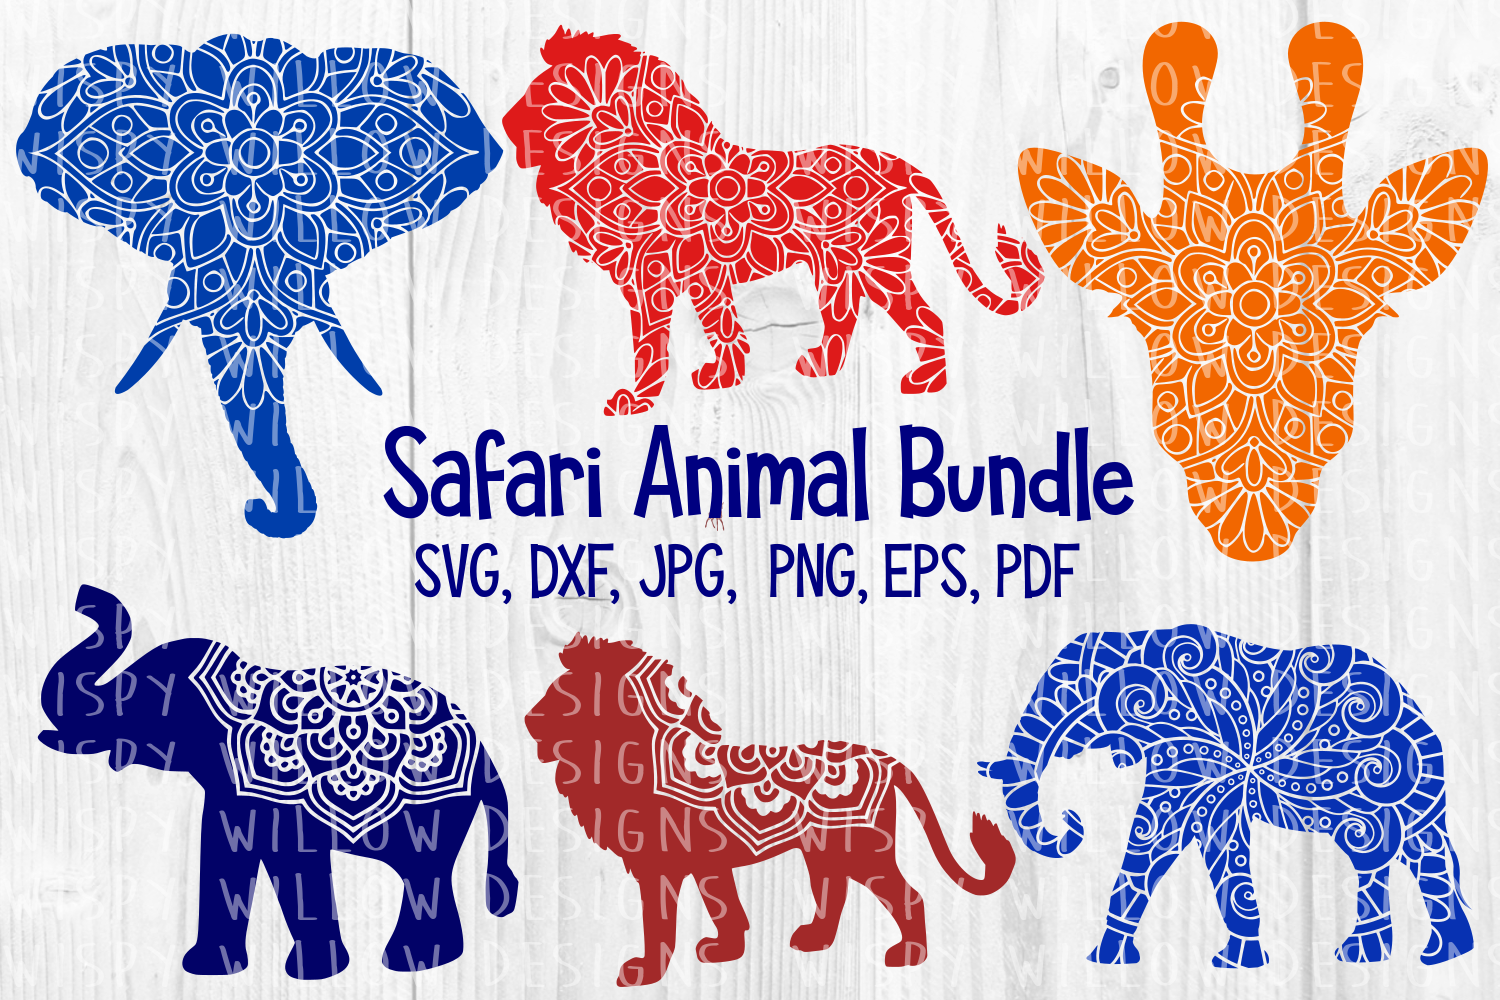 Download Free Safari Mandala Animal Bundle Lion Giraffe Elephant Cut File for Cricut Explore, Silhouette and other cutting machines.